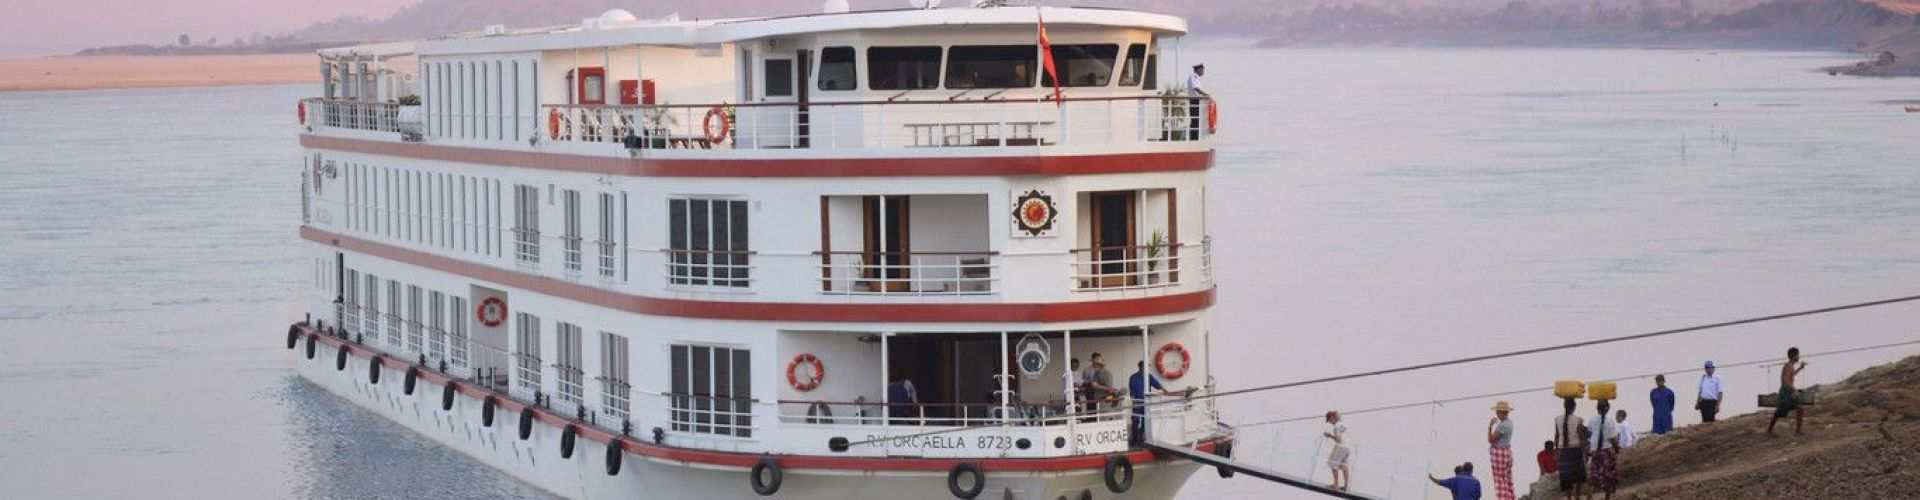 Luxury Irrawaddy River Cruise